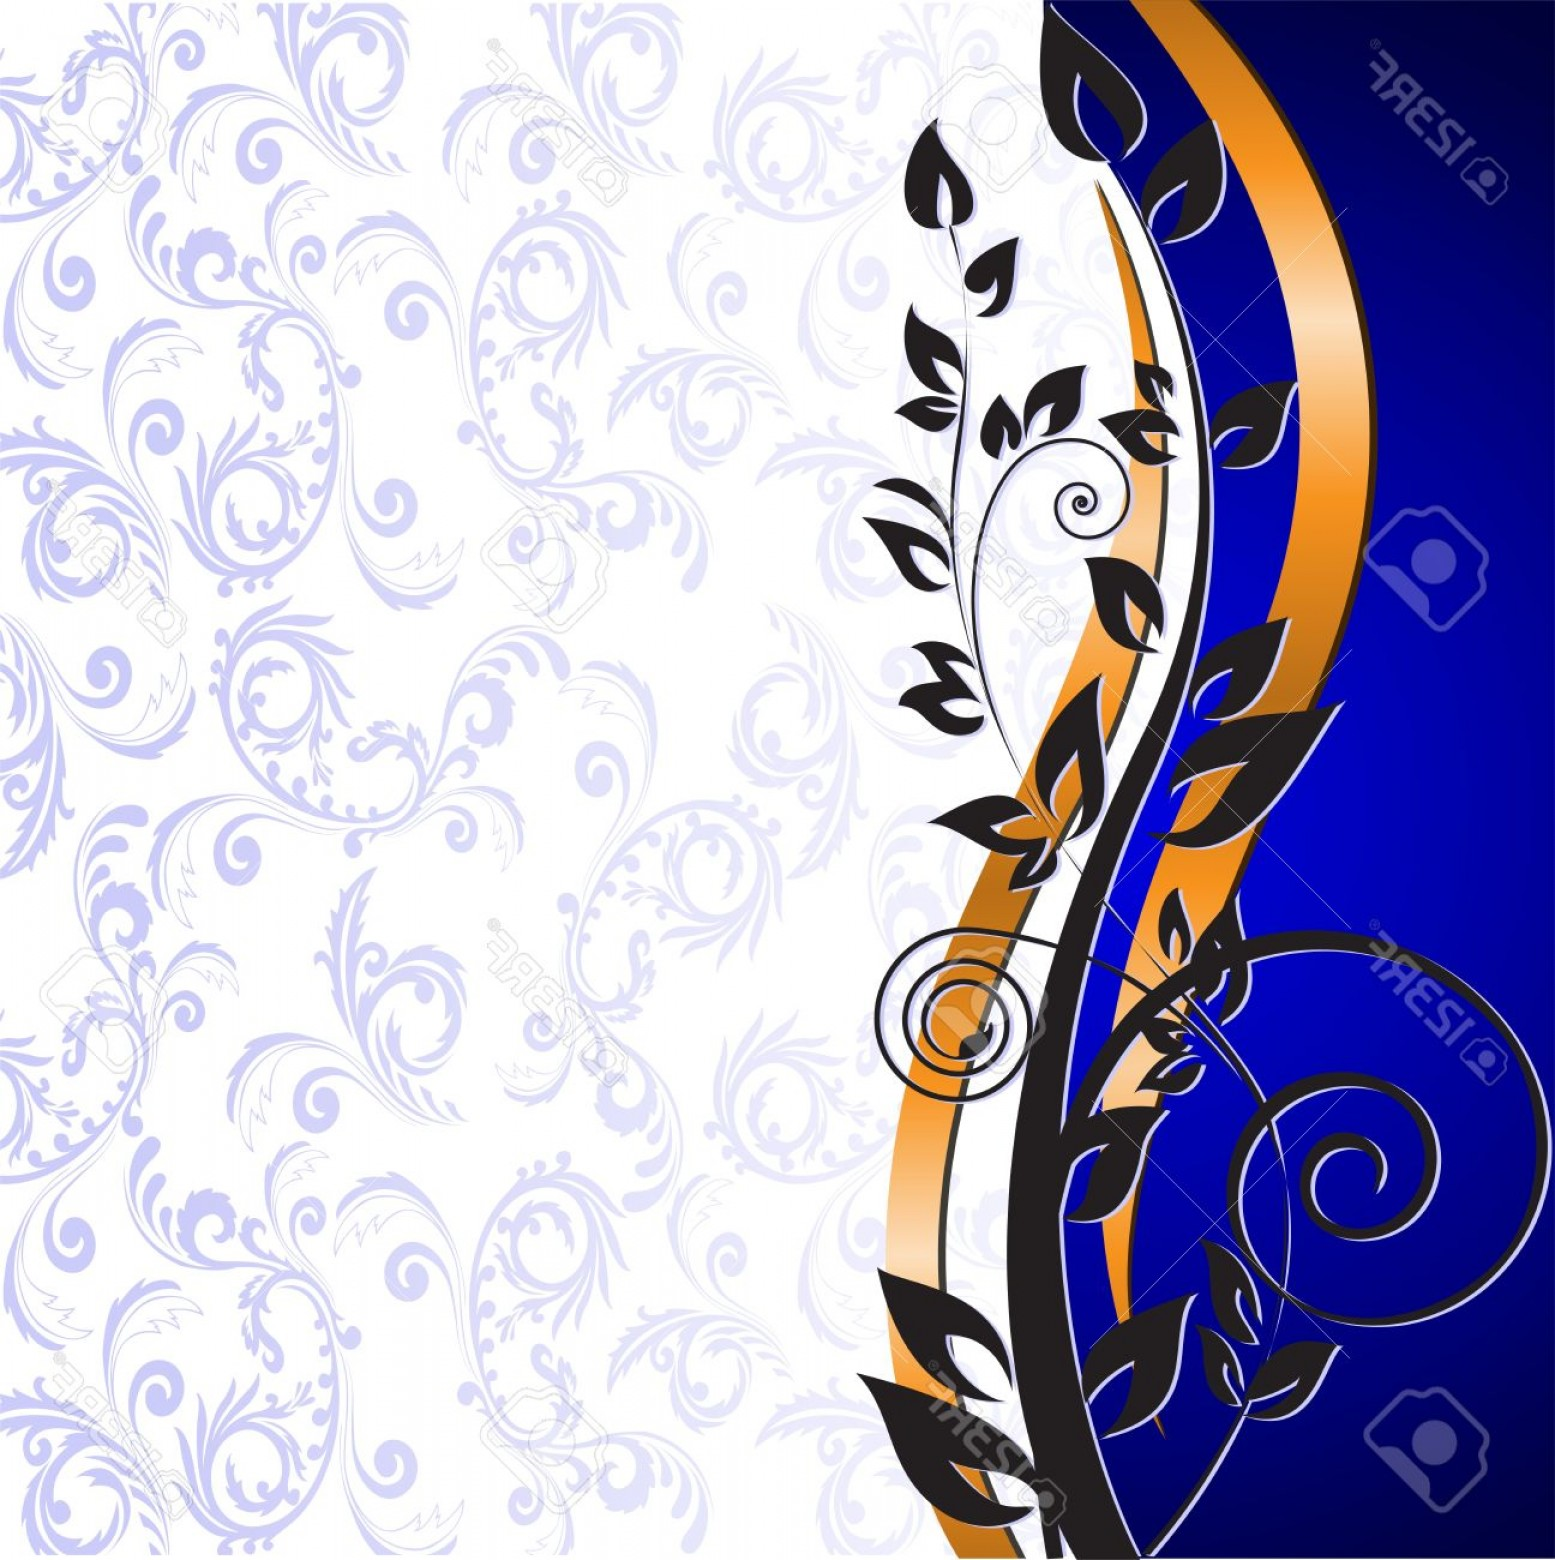 Gold And Blue Flower Vector: Photobeautiful Floral Pattern And Gold Ribbon On A Blue Background